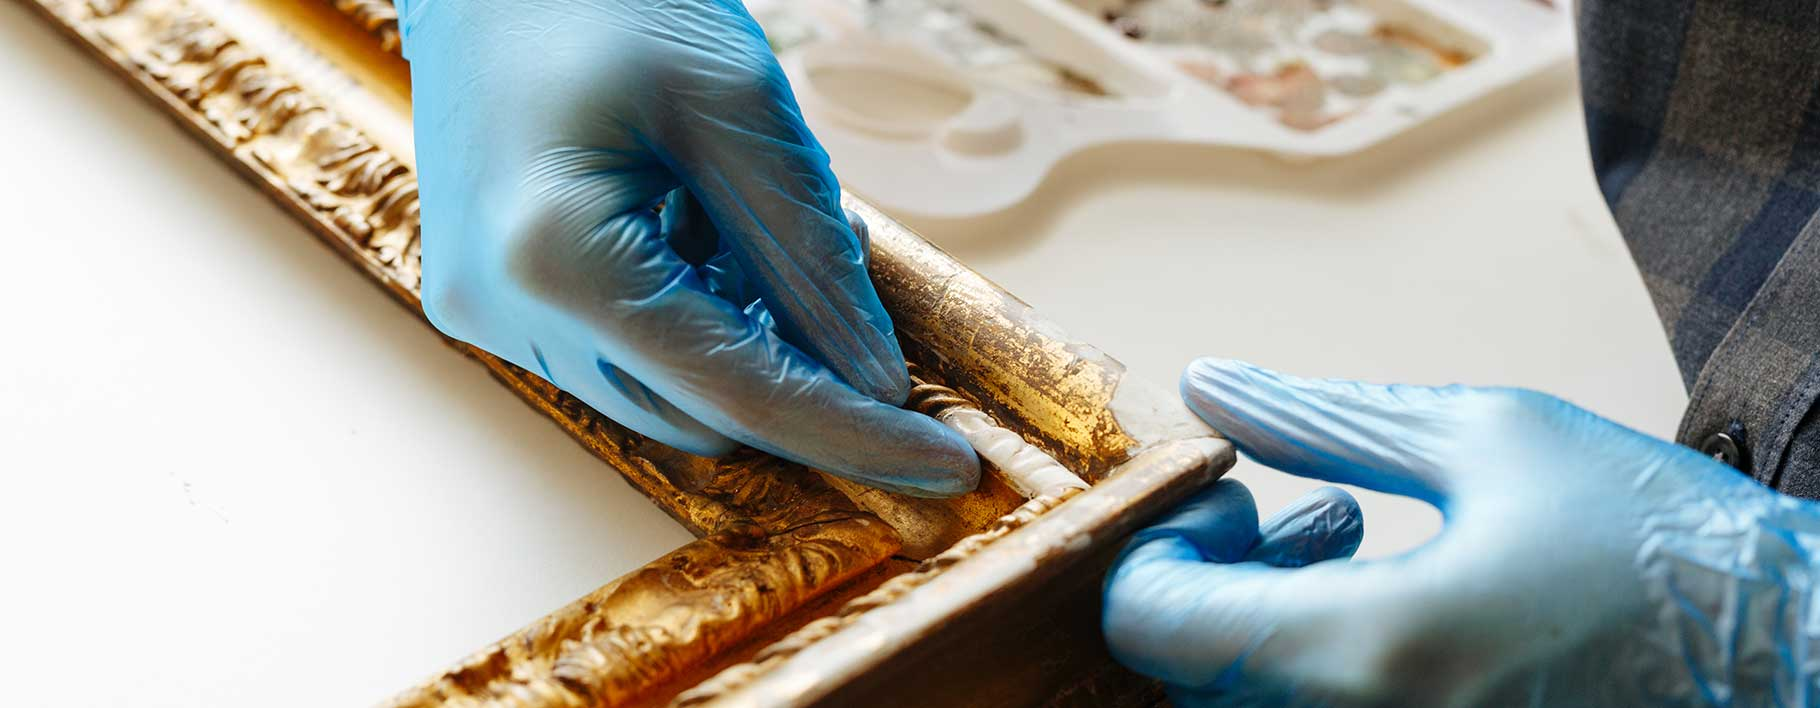 Conservator adding moulding to a picture frame